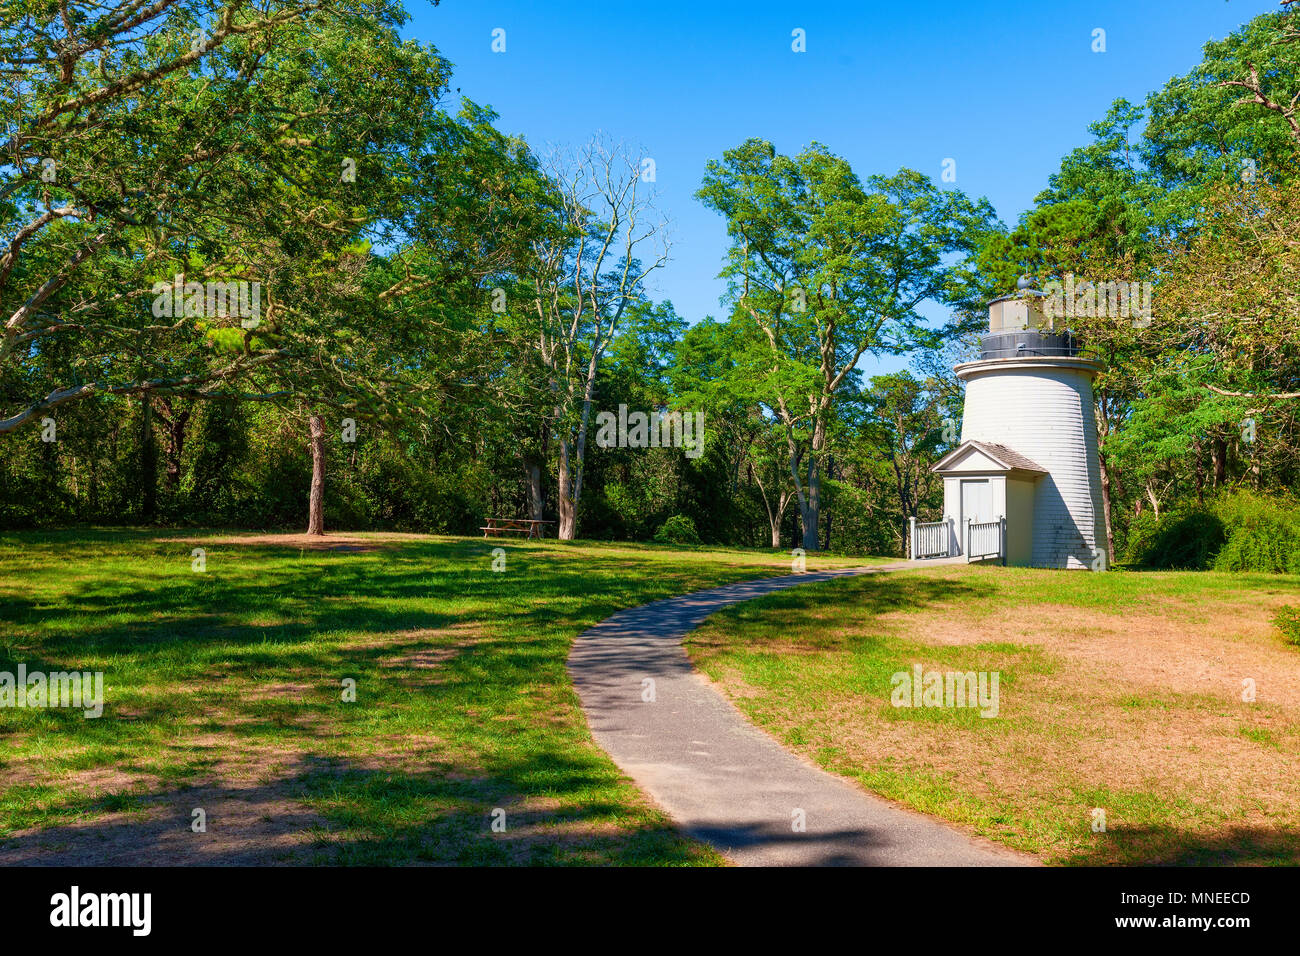 One of the Three Sisters lights were built in 1838, 150 feet apart in a straight line.  They were taken apart and sold when the lighting technology ev - Stock Image